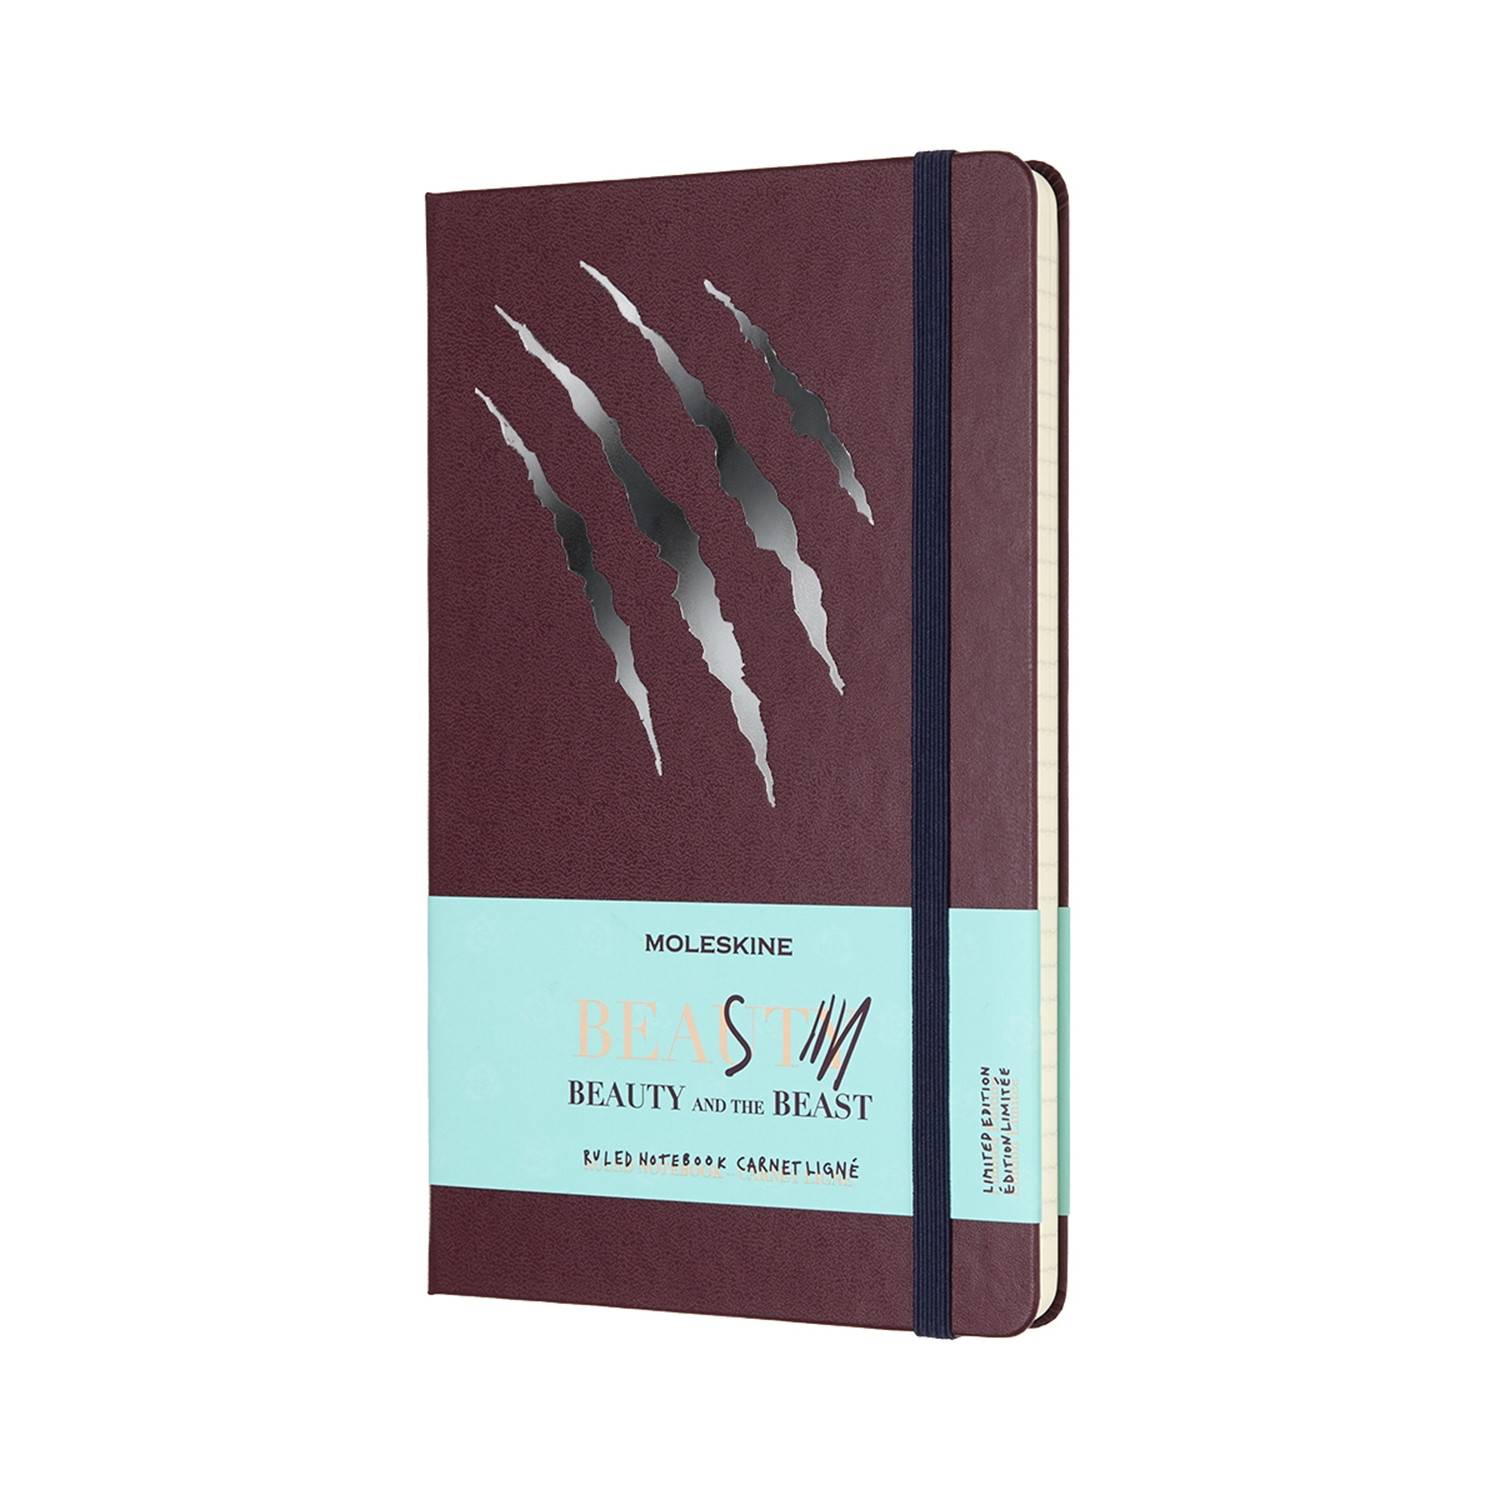 The Beauty and the Beast -Limited Edition Notebook - Large Ruled Beast By MOLESKINE